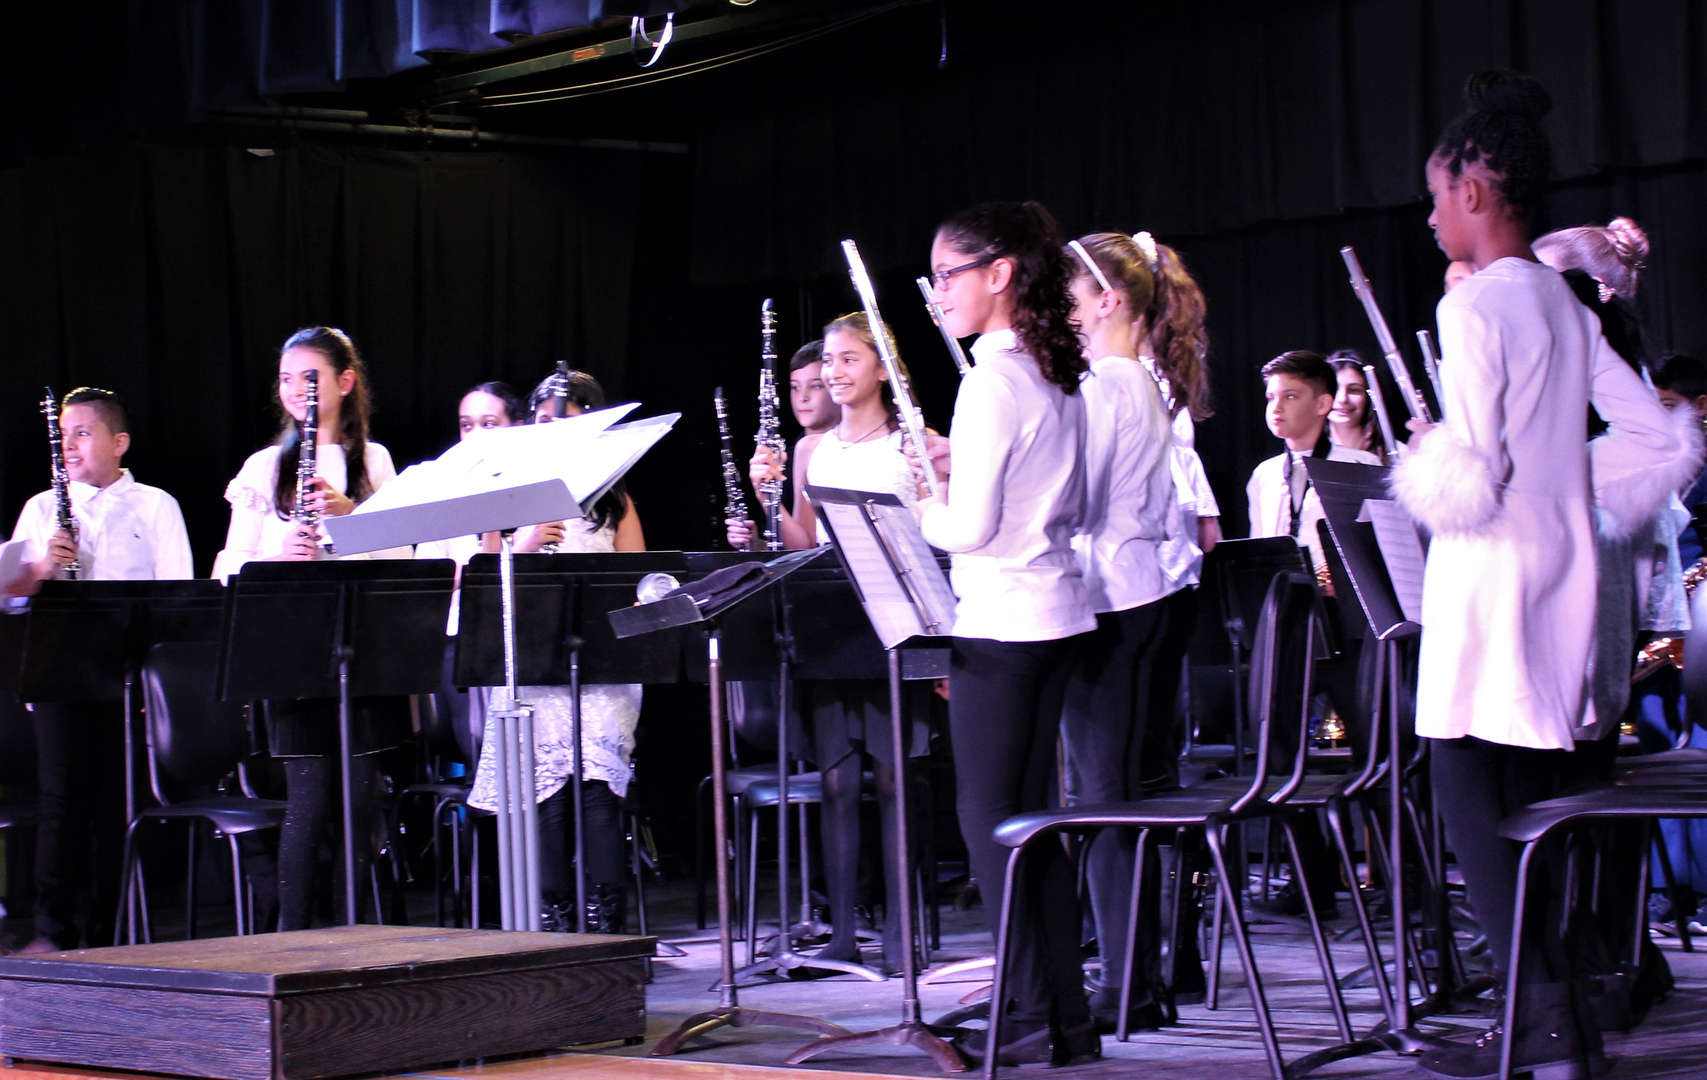 Members of the Fifth Grade Band stand as the audience claps for their performance in the Winter Concert.